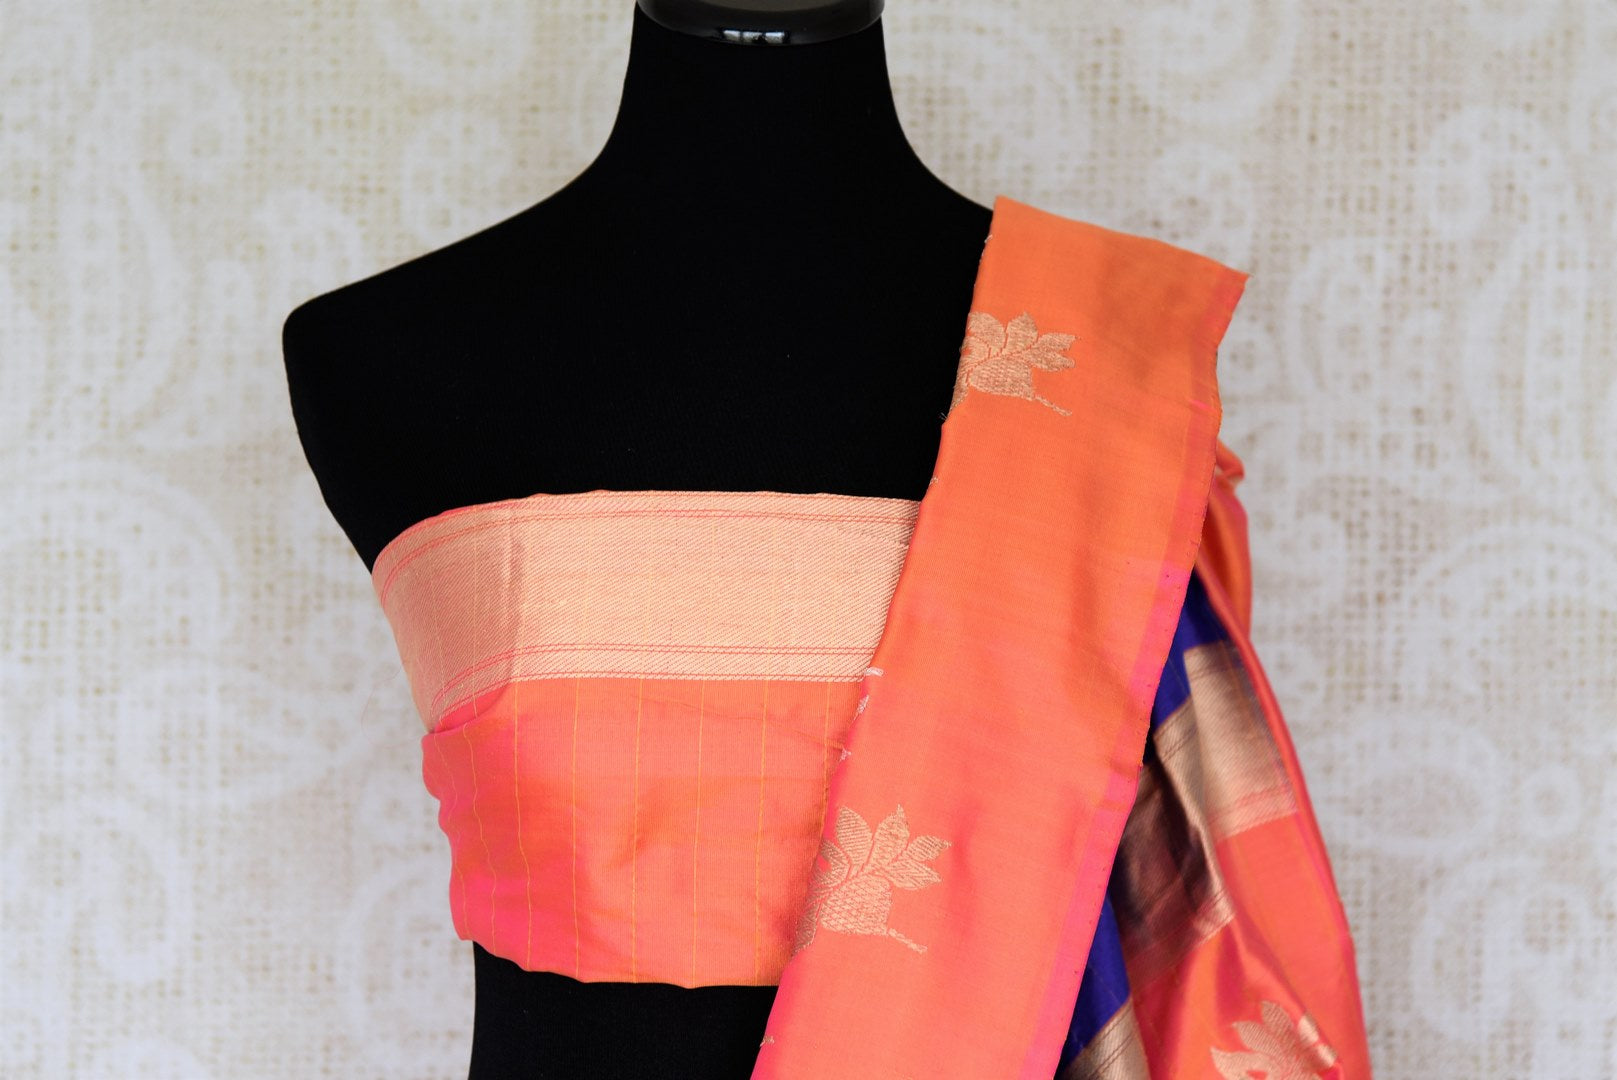 Flawlessly designed blue banarsi silk saree with a stunning combination of orange buta work border, it is perfect for parties, weddings and formal events. Style this sari with a rich silk orange blouse to ooze the sass. Shop handcrafted silk sarees, designer sari, printed saris online or visit Pure Elegance store, USA.-bloue pallu